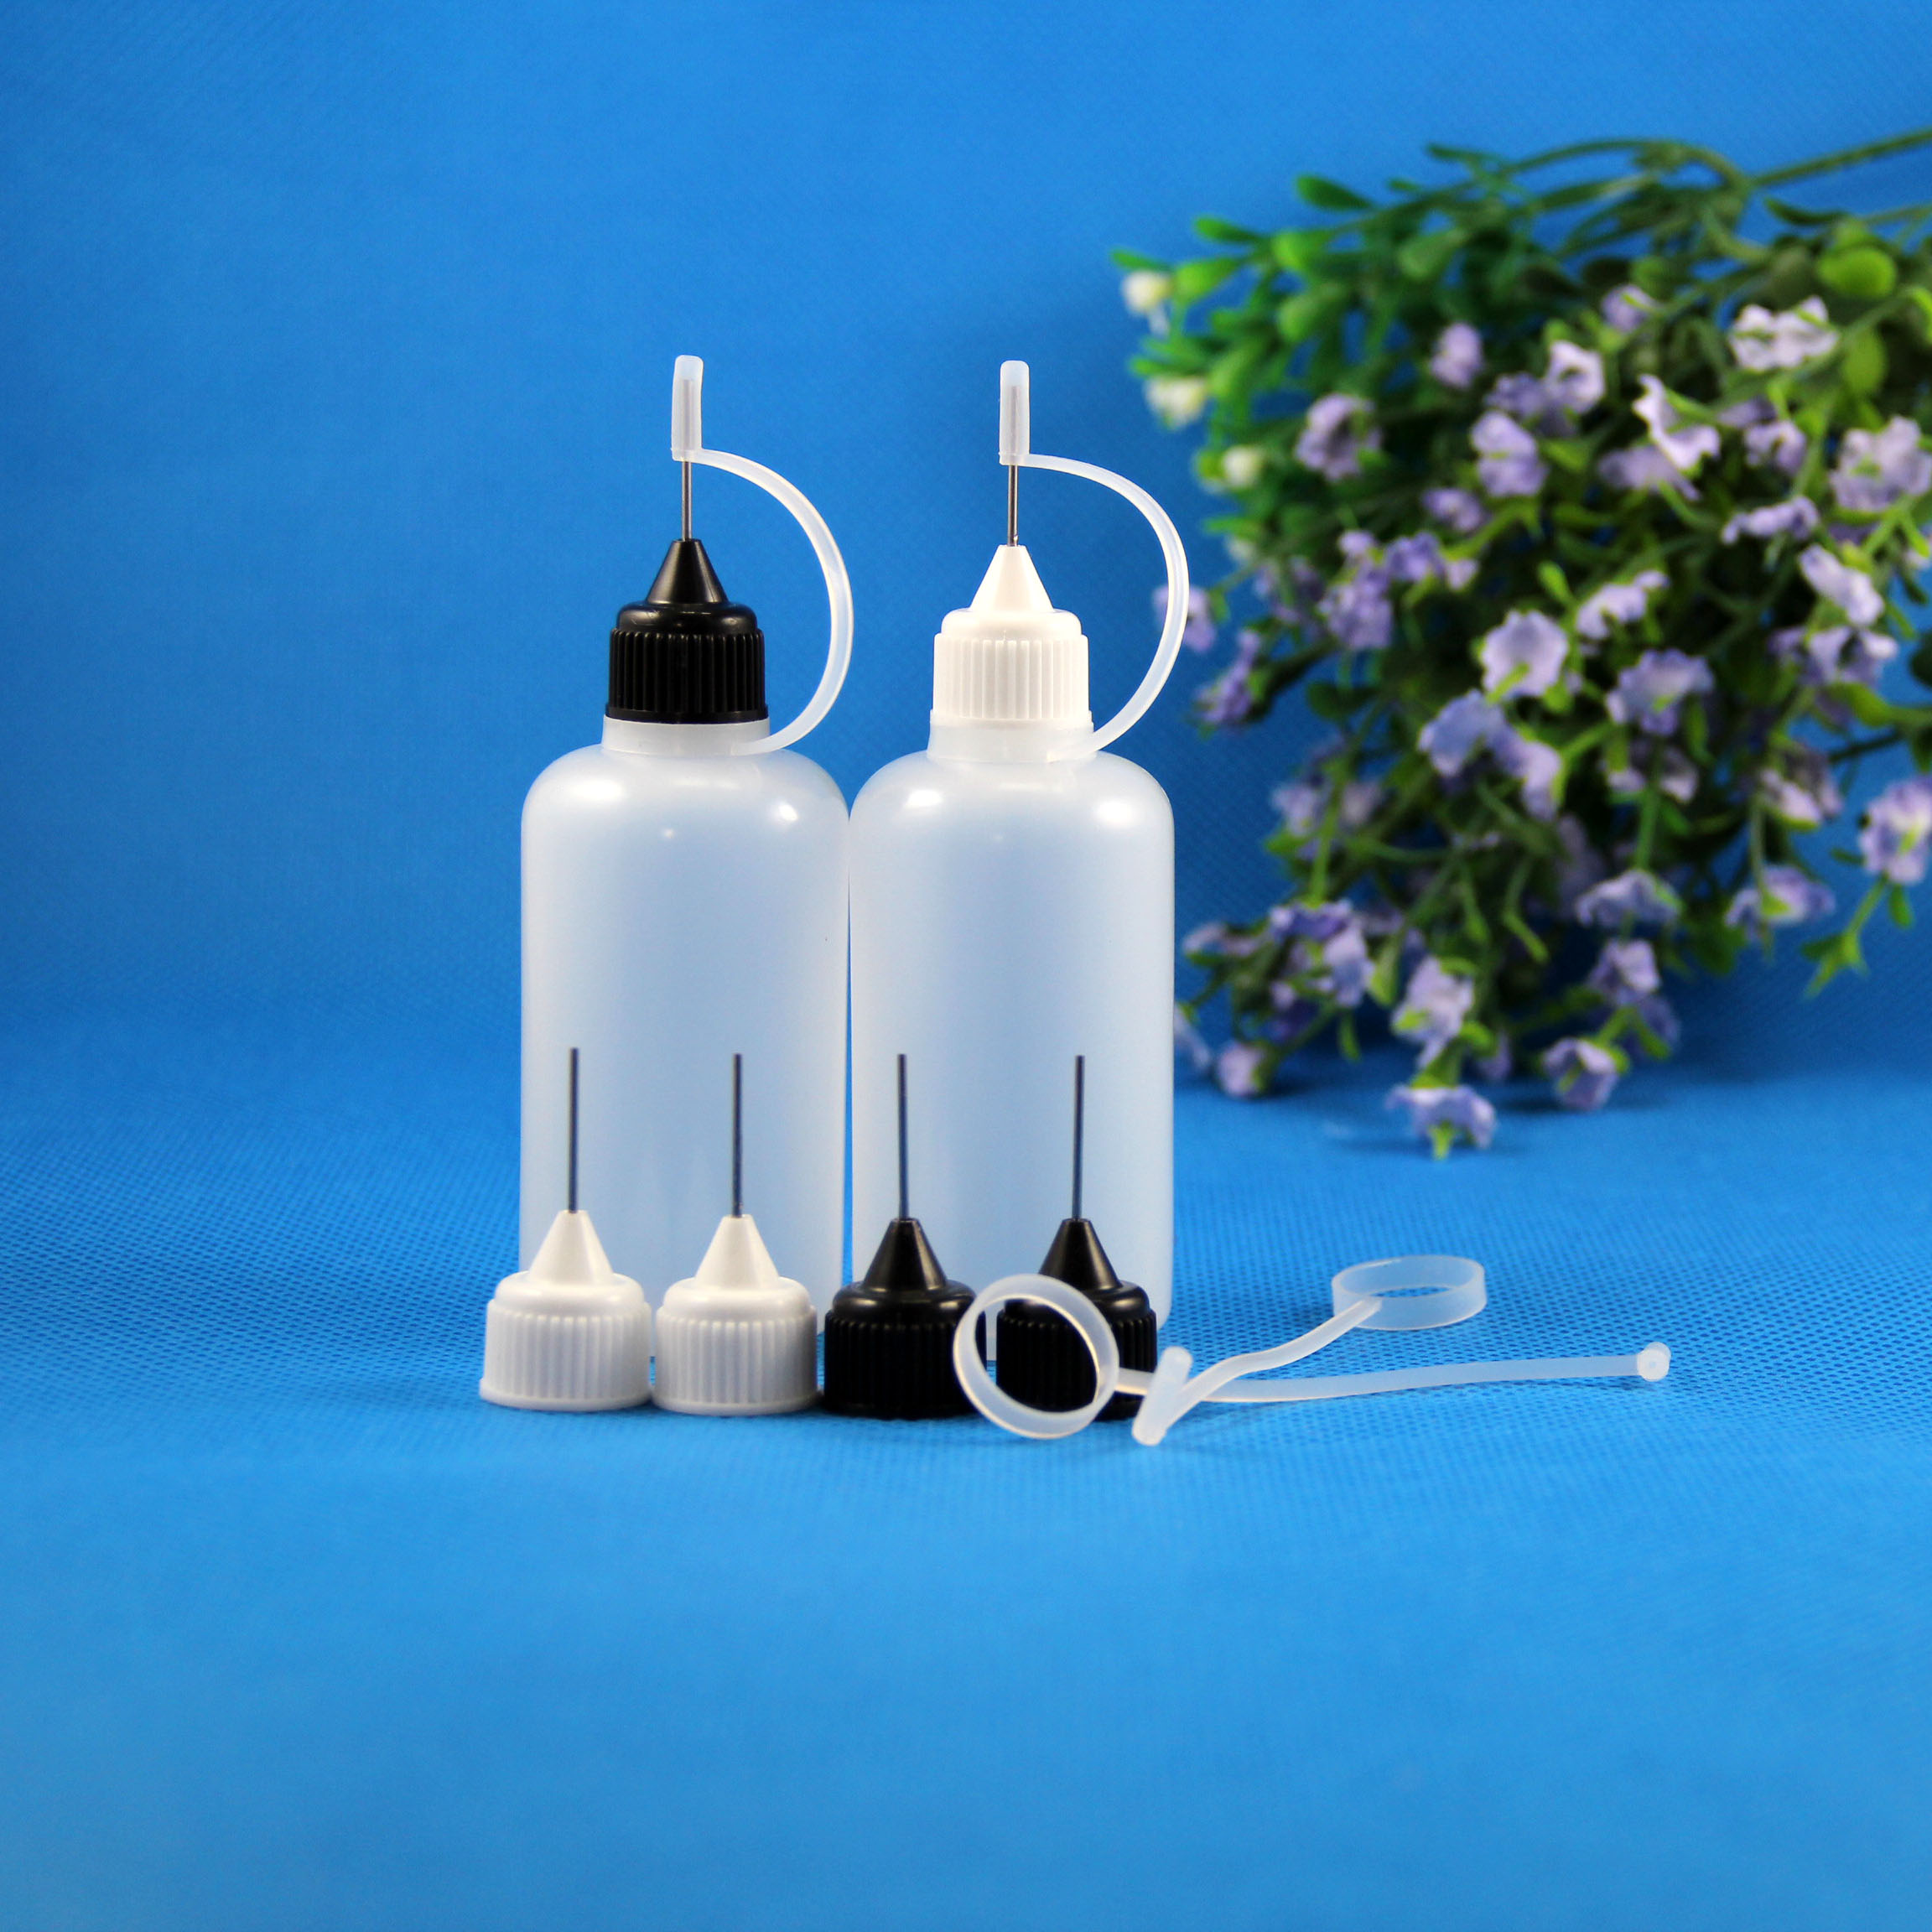 Lot 100 Pcs 50 ml 5/3 OZ Plastic Needle Dropper Bottles Safe Tip